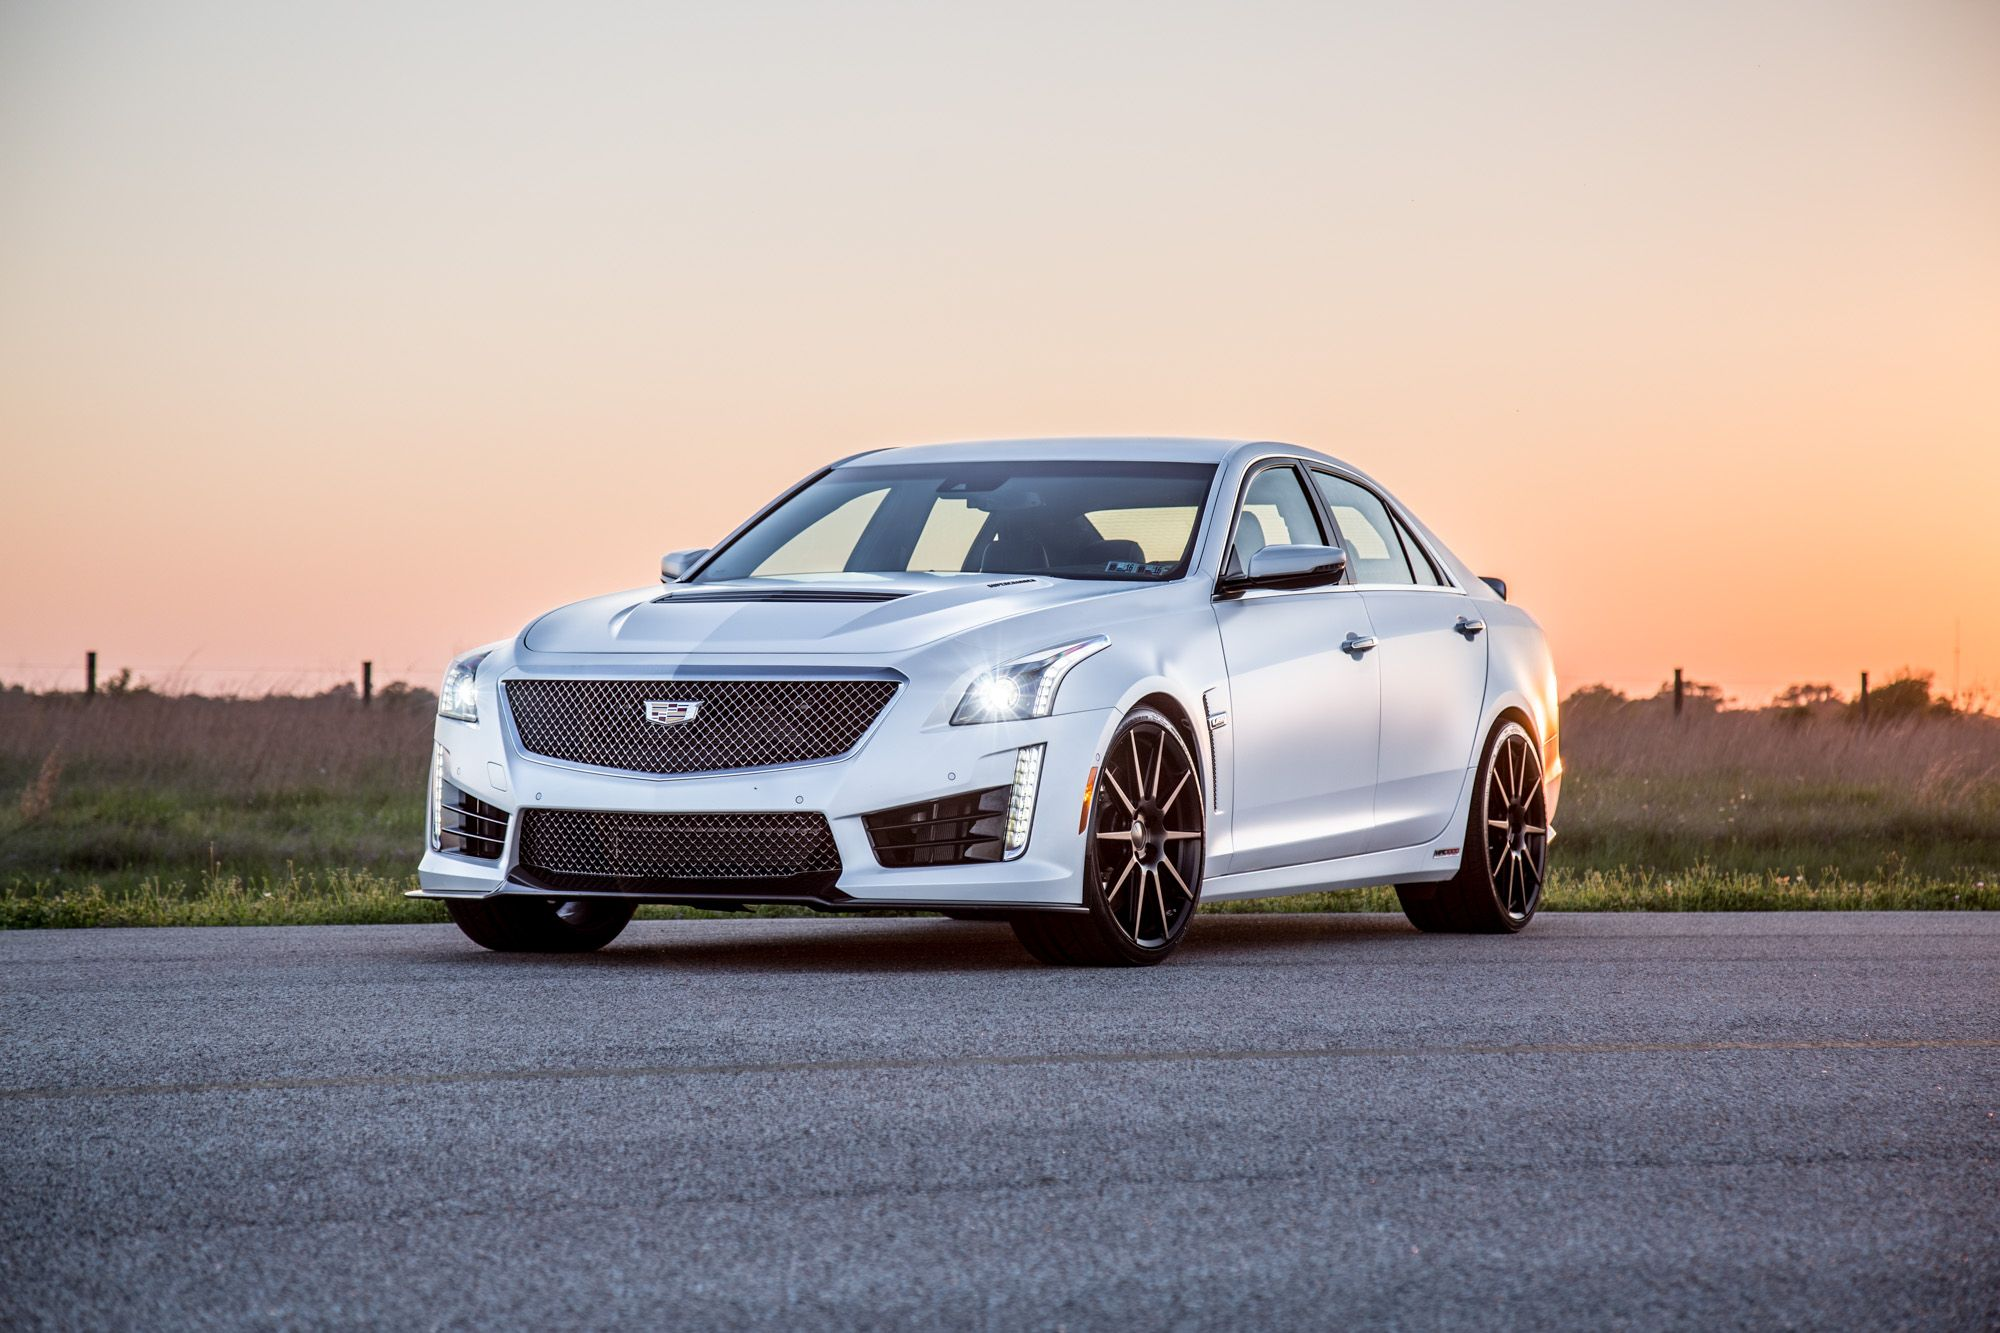 Hennessey performance offers the supercharged engine upgrade for the 2016 2017 cadillac cts v which makes it the fastest and most powerful sedan in the